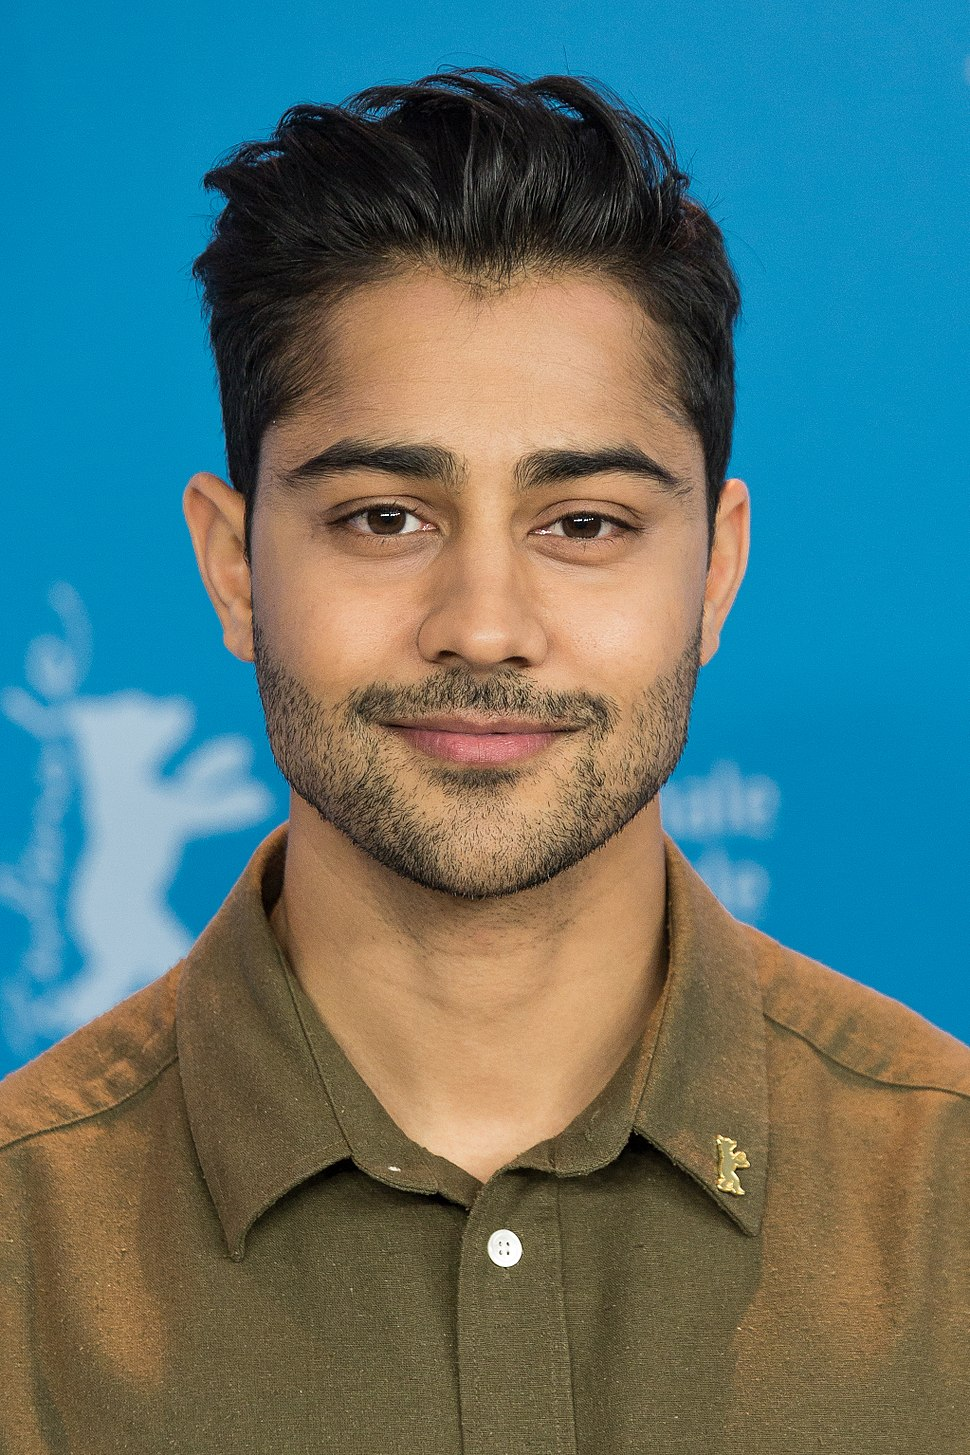 MJK32833 Manish Dayal (Viceroy's House, Berlinale 2017)